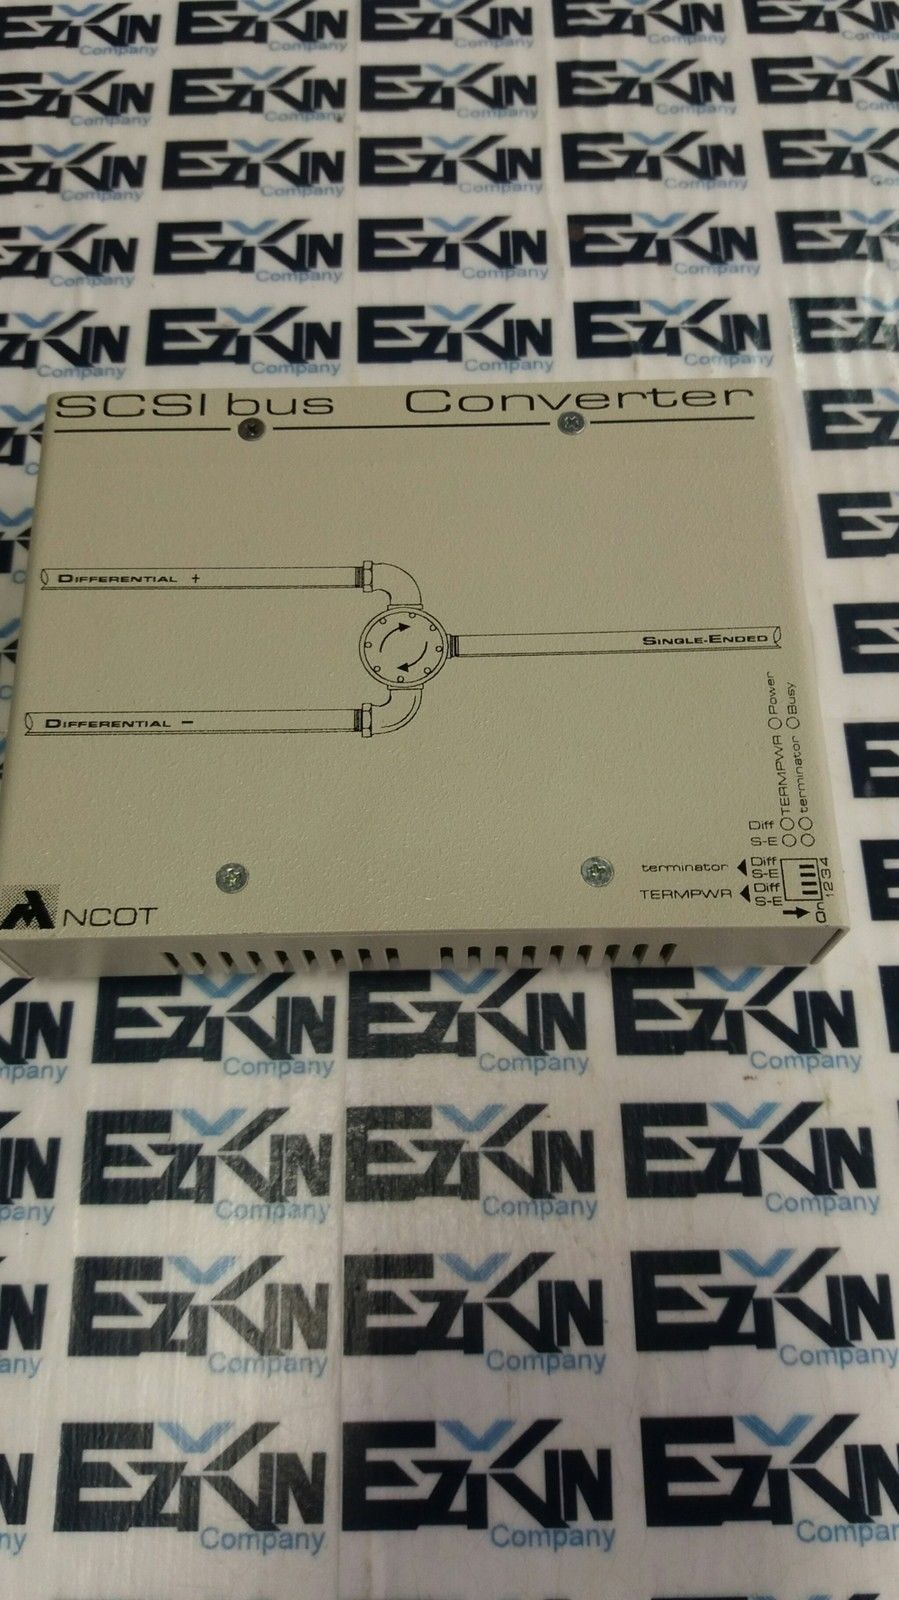 ANCOT SCSI BUS CONVERTER DifferentiaL model SED-616M